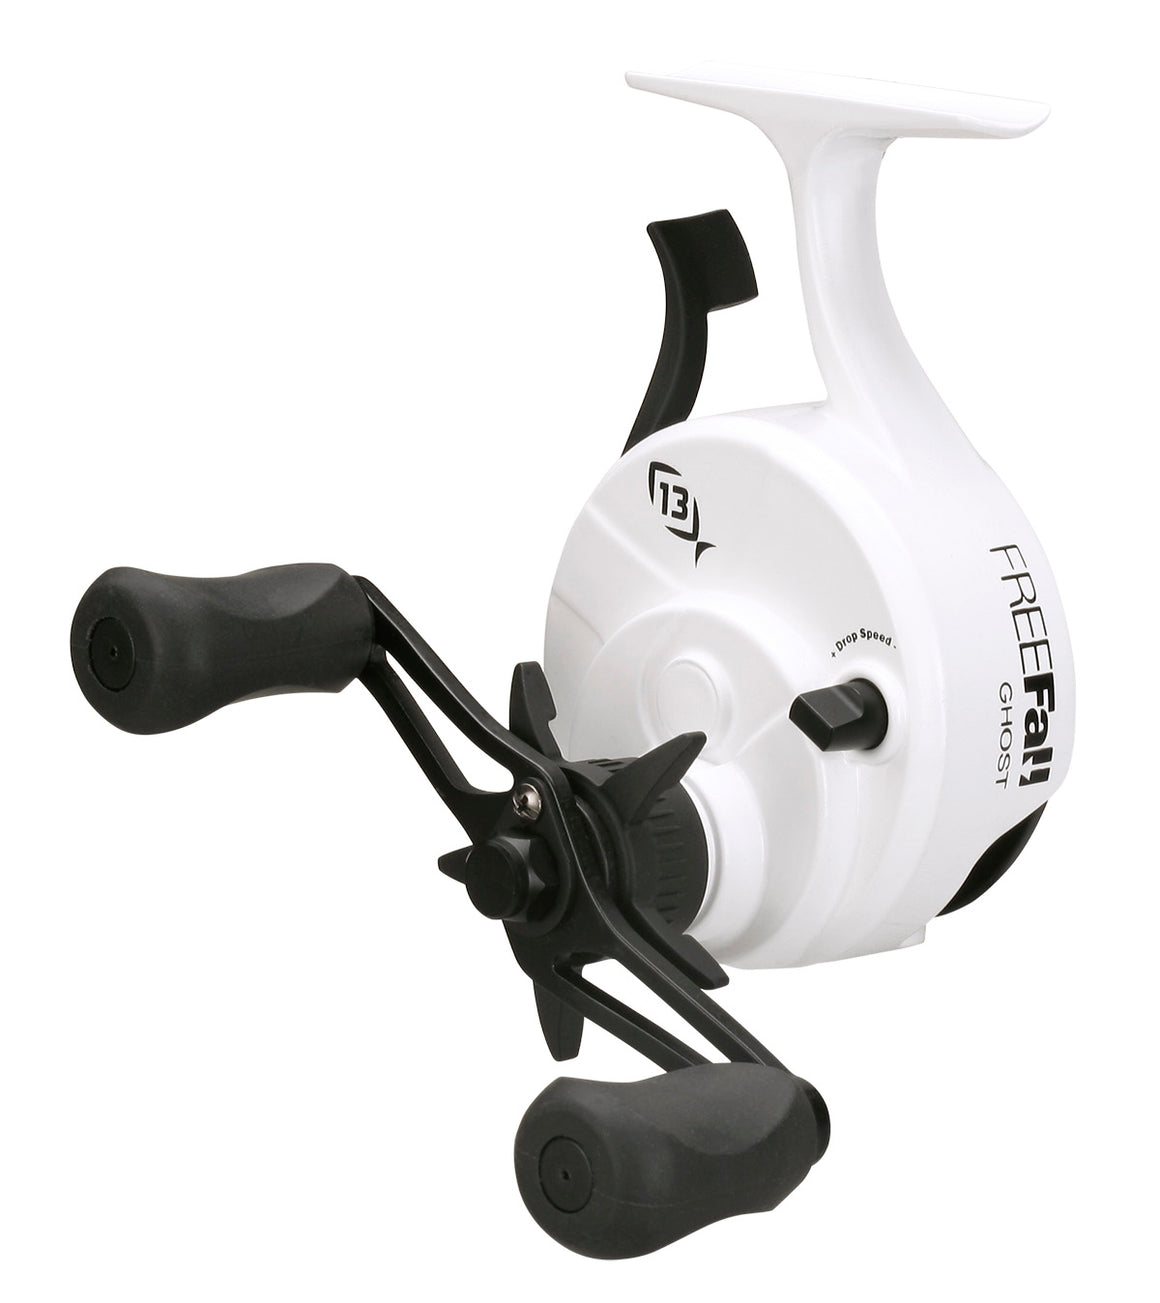 13 Fishing Black Betty FreeFall Ghost Ice Reel - White - Direct Fishing Sales